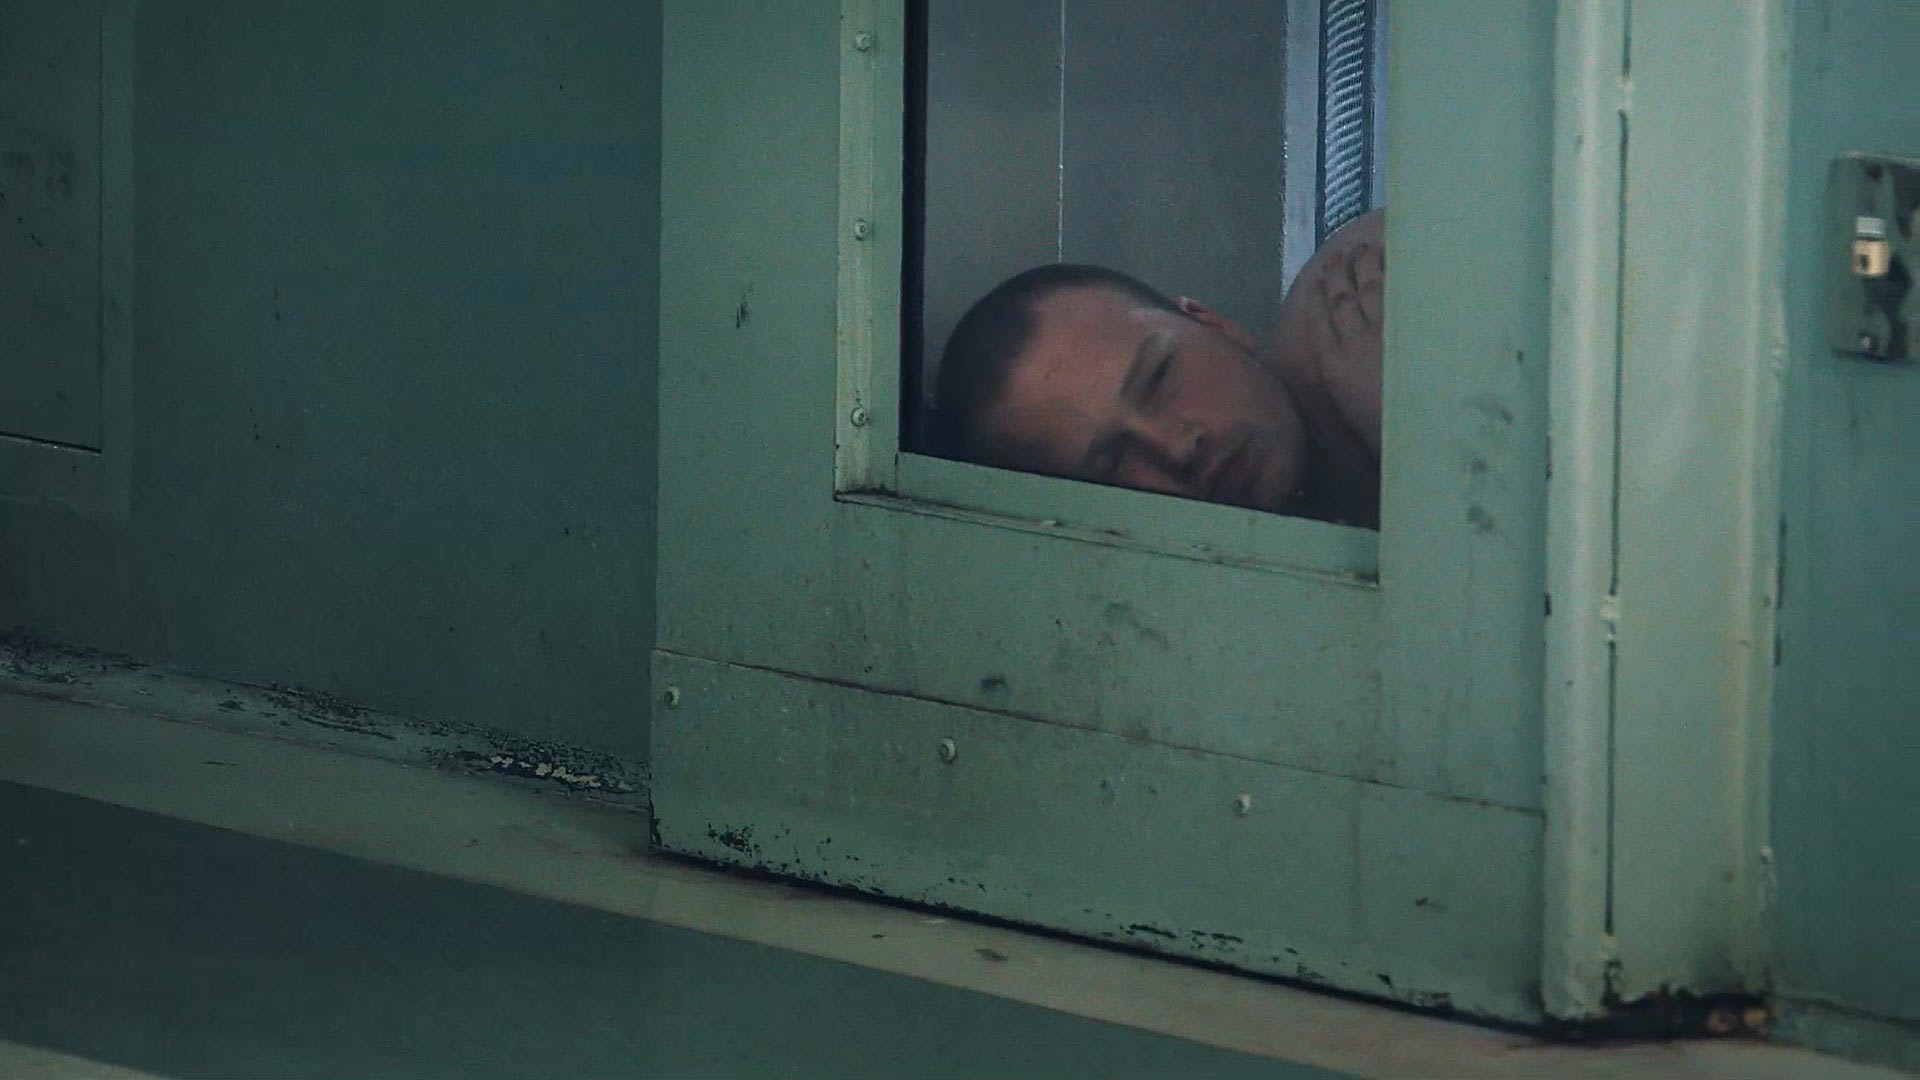 A Maine State Prison inmate inside his cell in the prison's Mental Health unit.